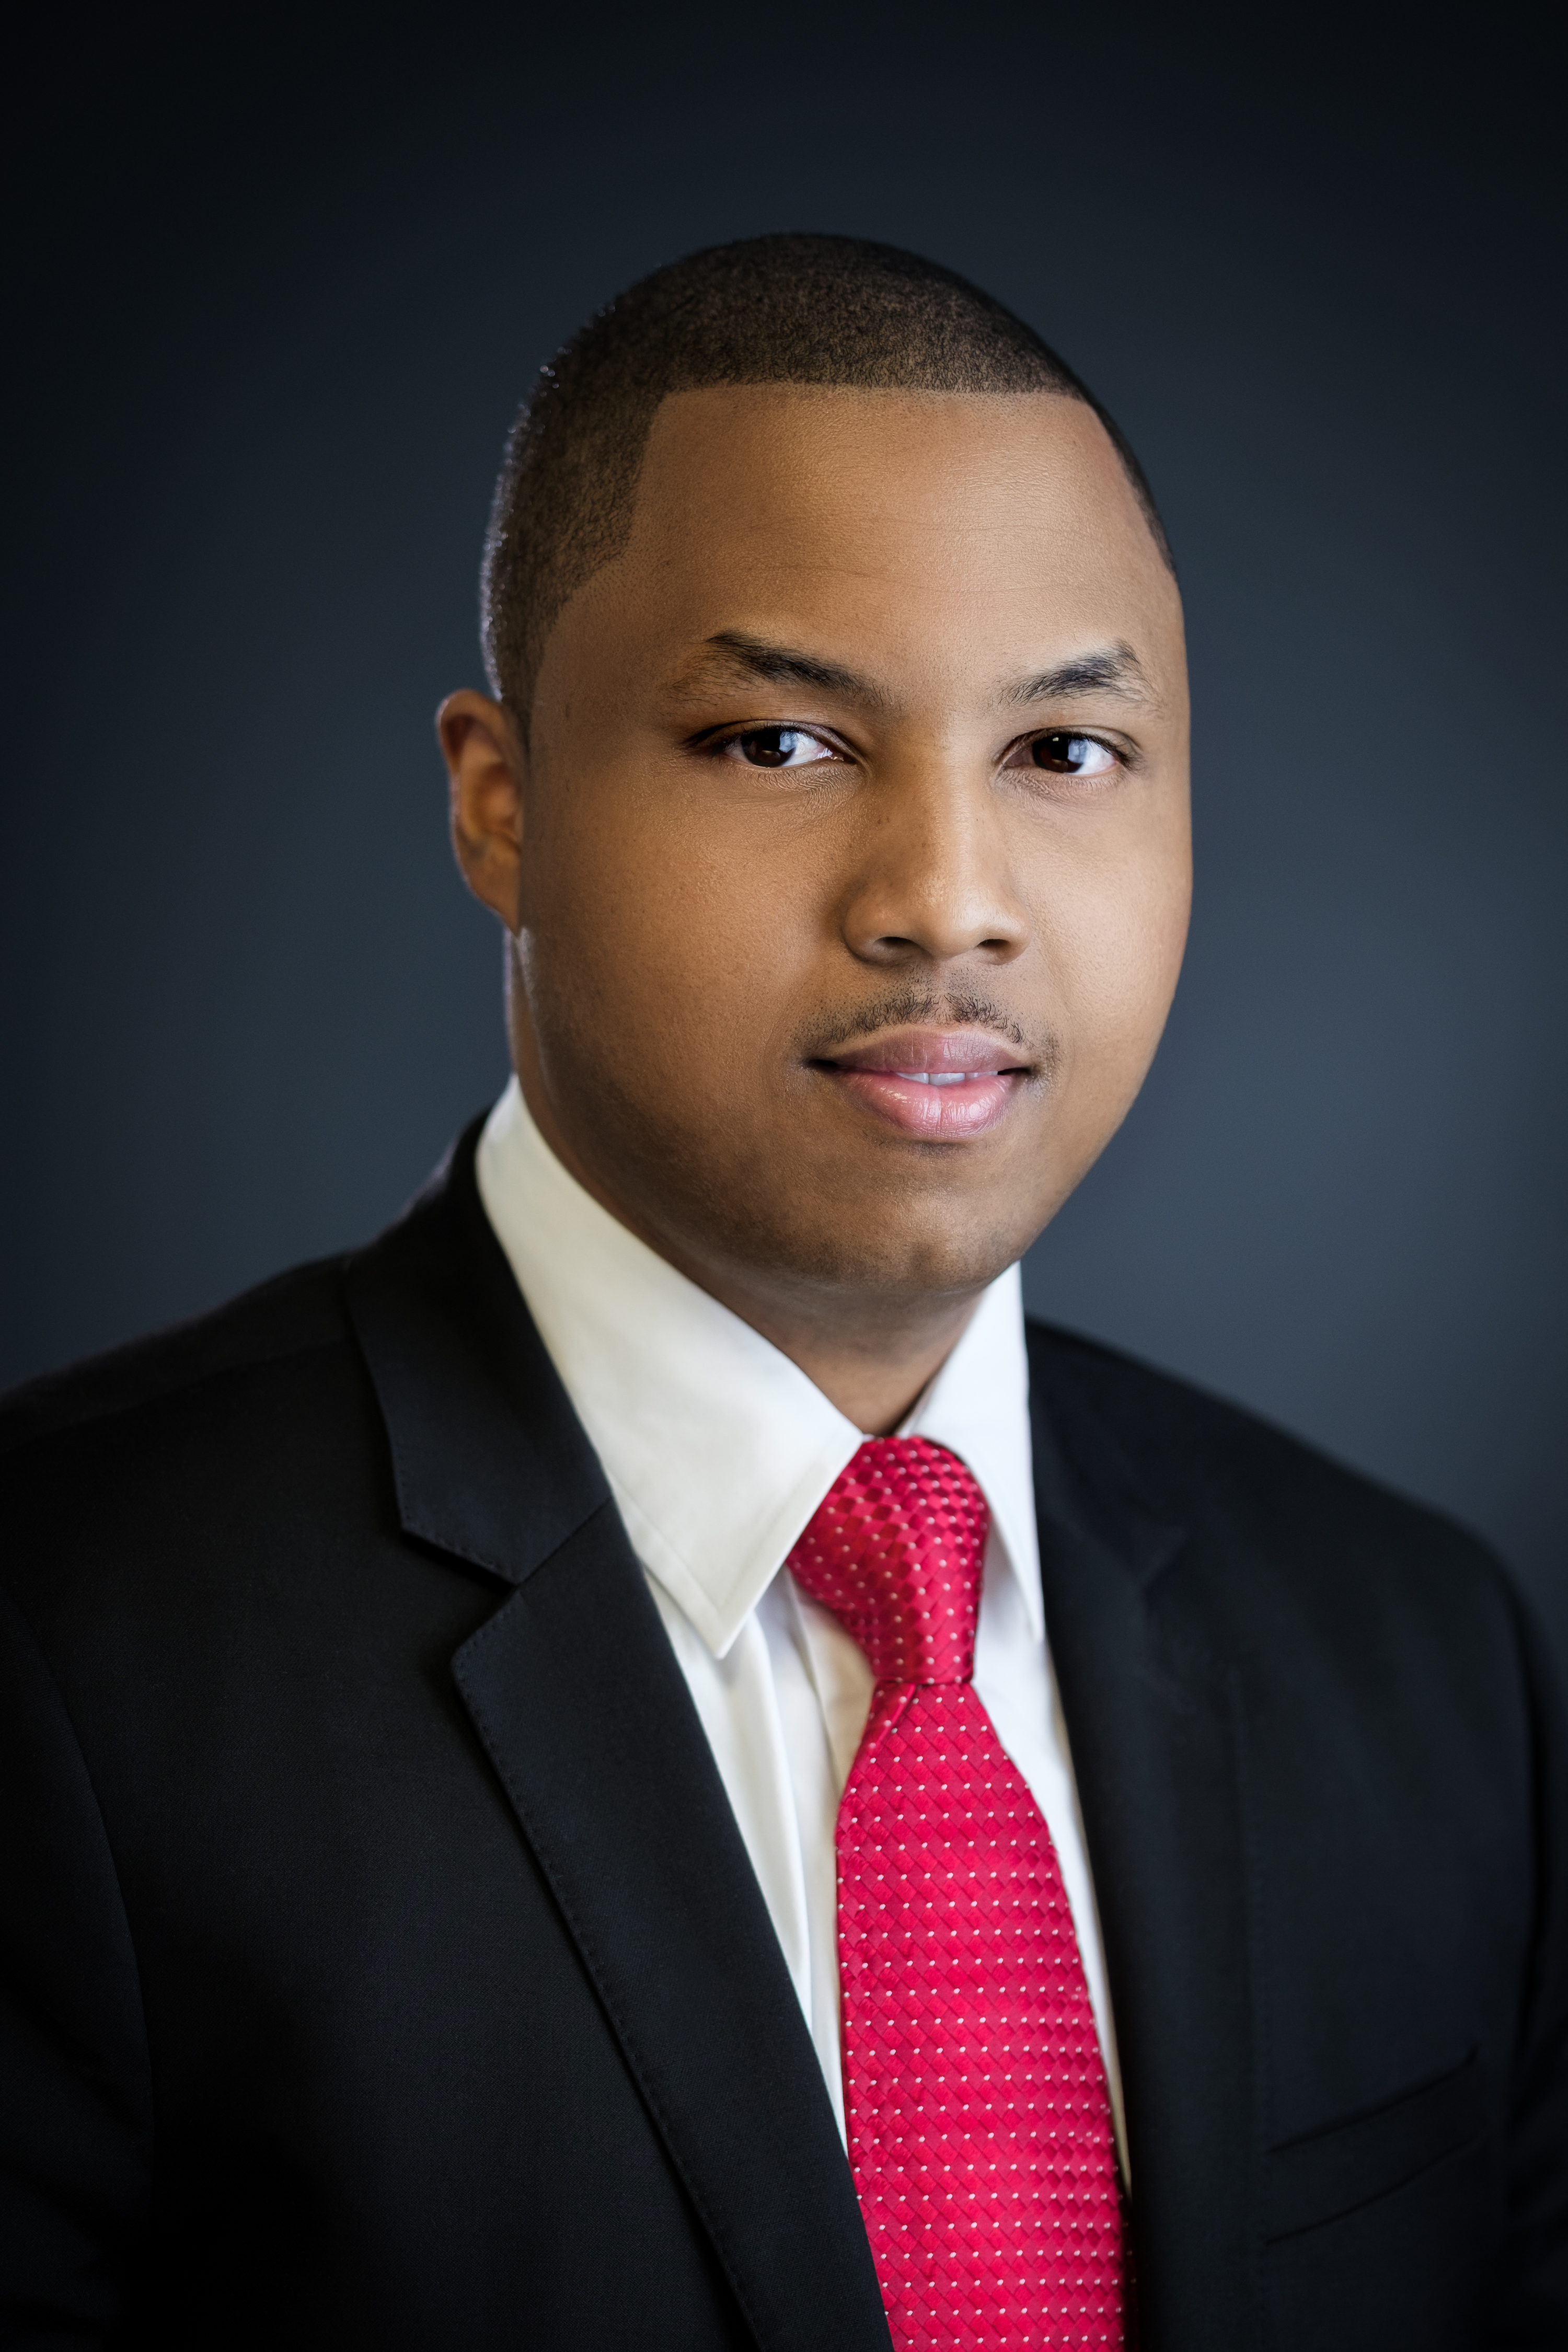 Newark New Jersey Corporate Headshot Photographer